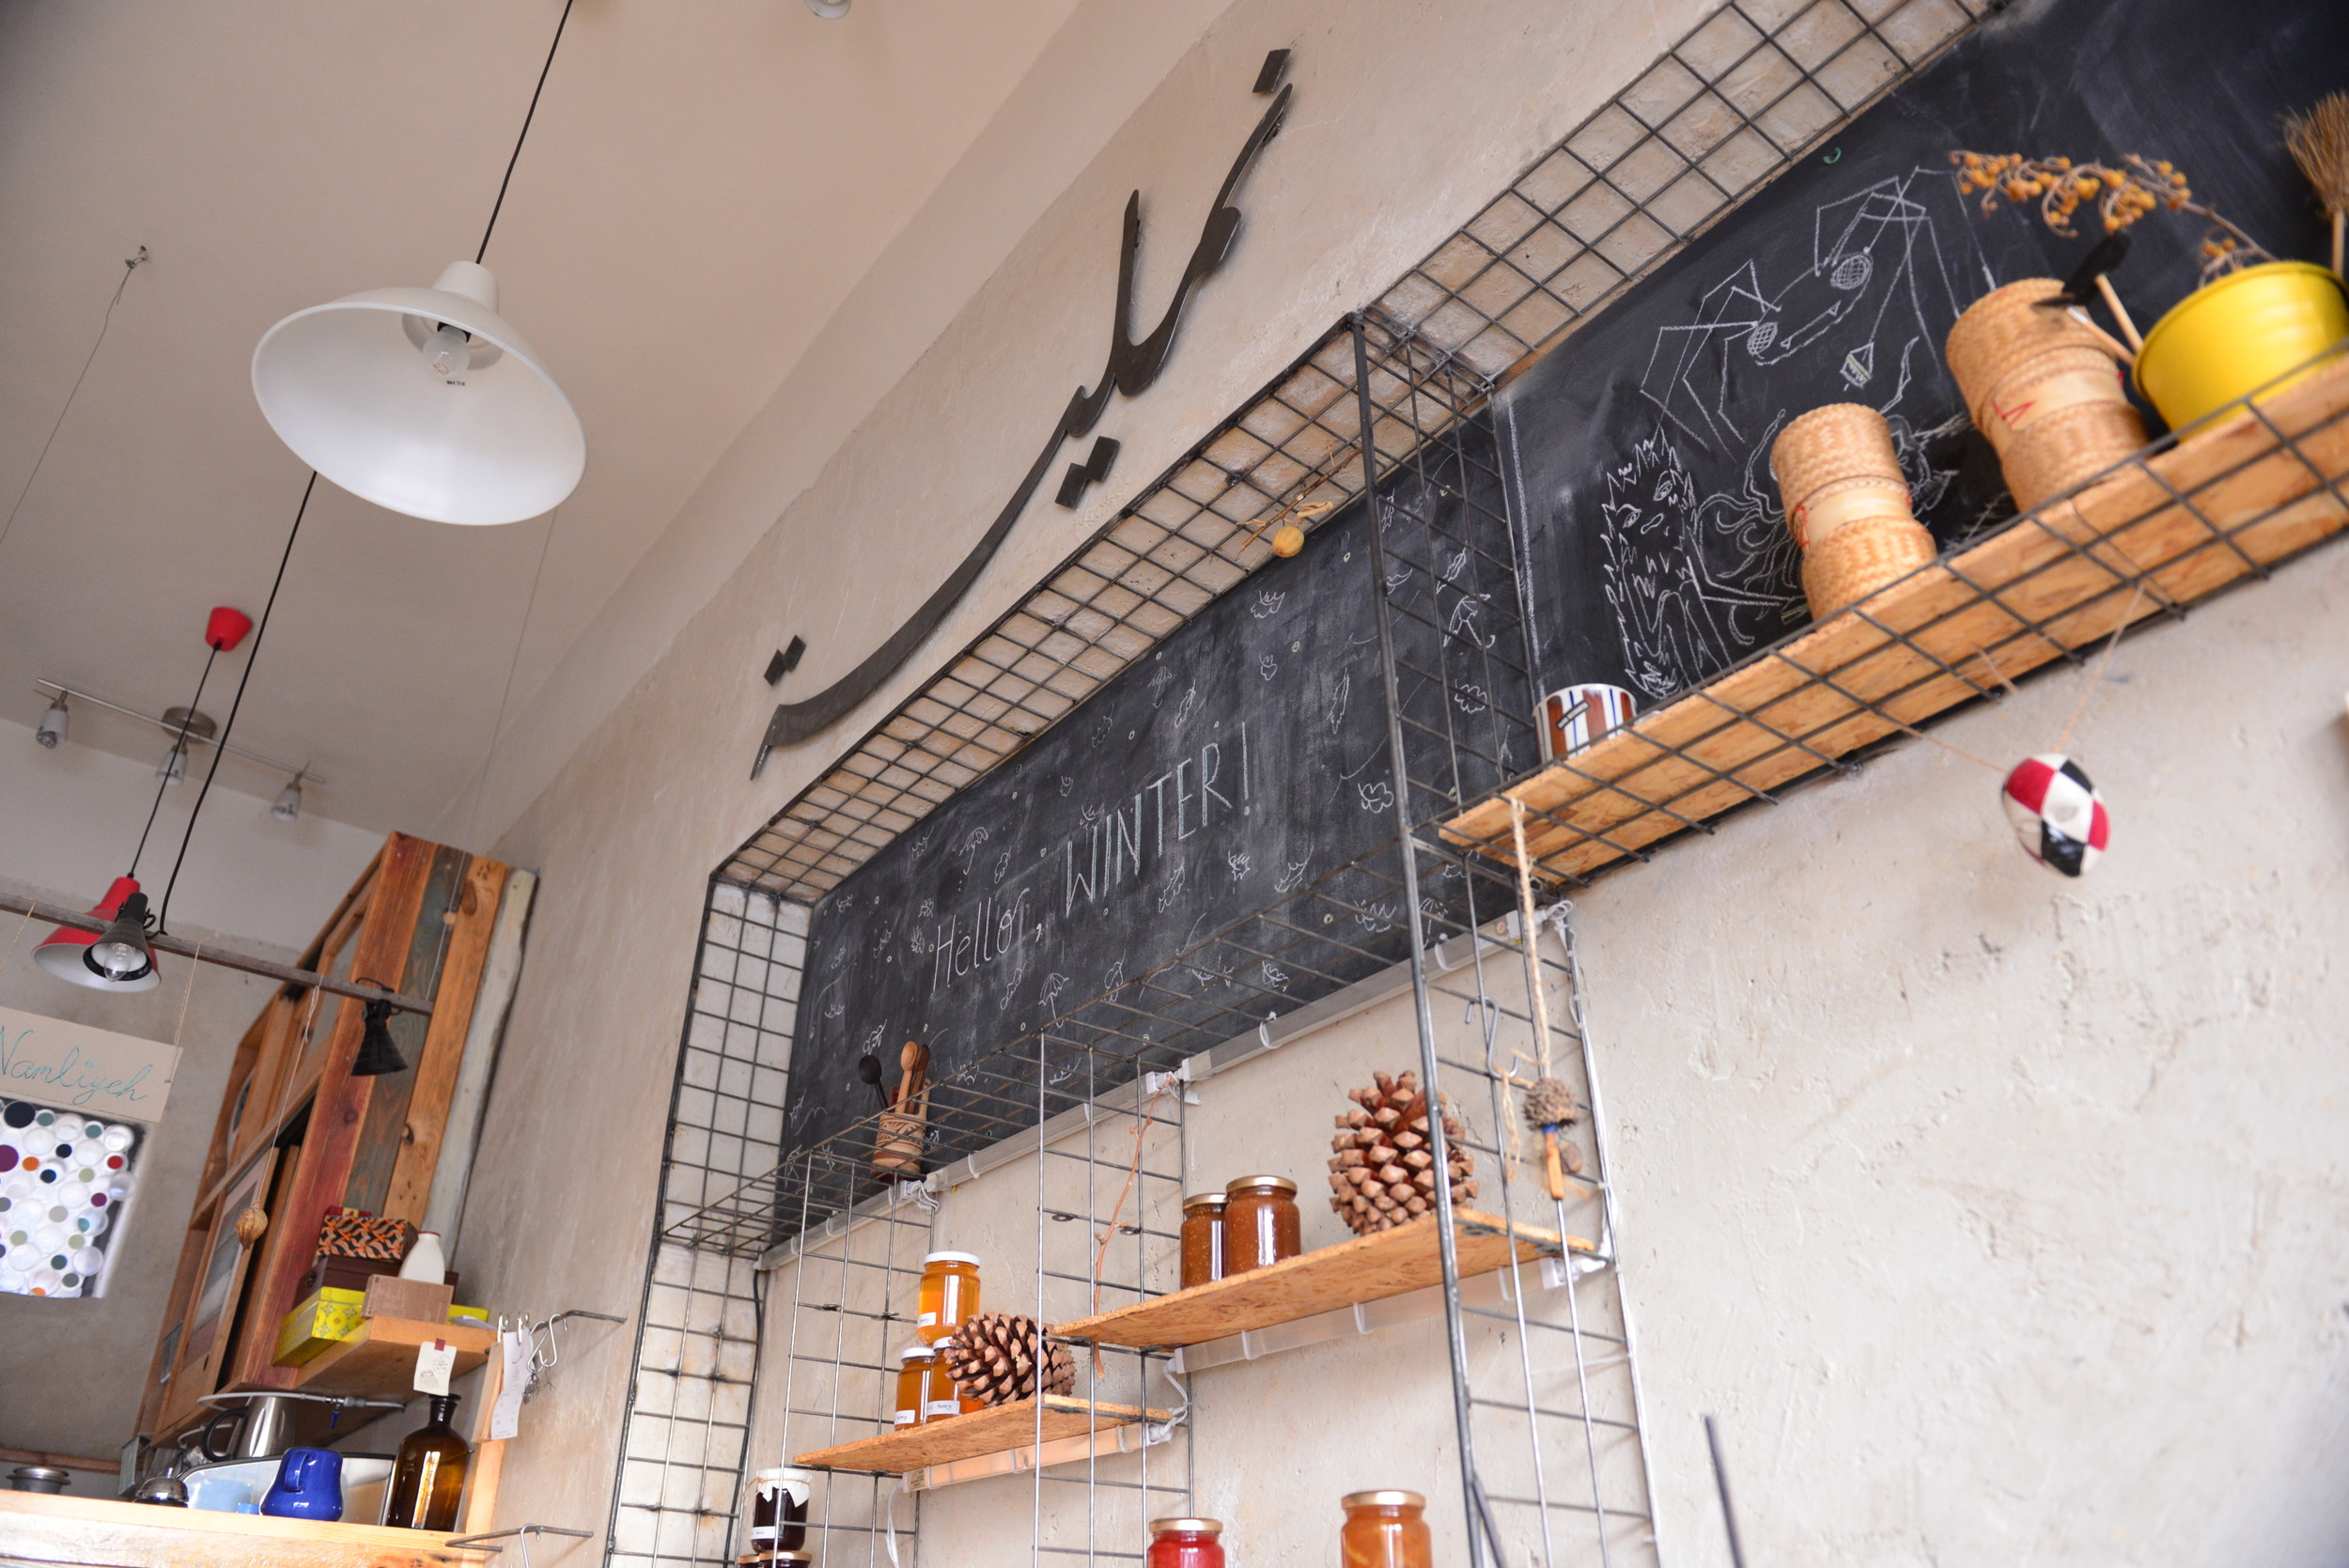 This is Namliyeh, an awesome jam shop in Amman, which also serves tea and coffee.  Not only is the artisan-made jam delicious, the shop was started by two young Jordanian women who wanted to bring back locally produced flavors and a home for creatives.